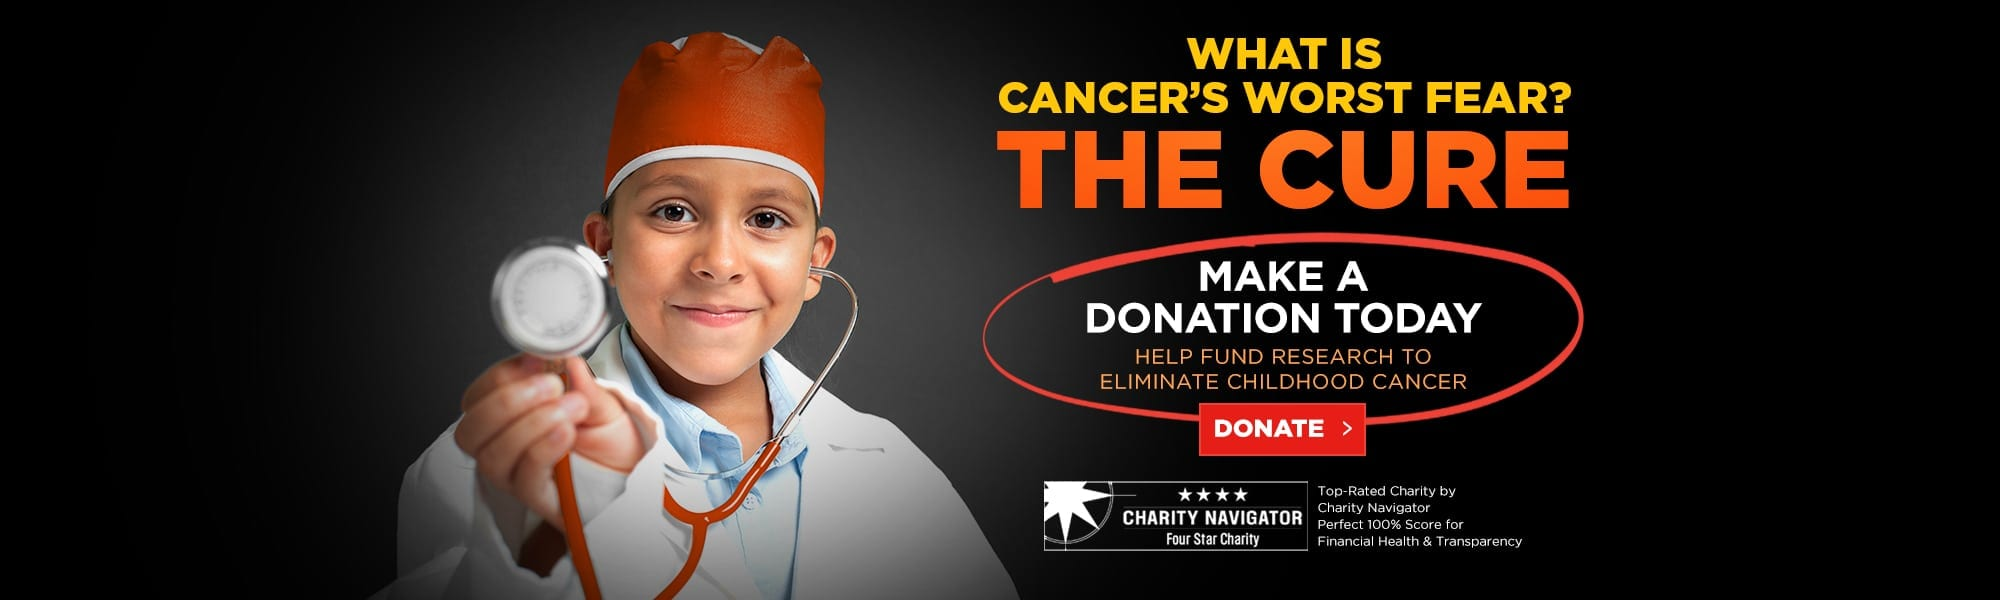 What is Cancer's Worst Fear? - The Cure! Make A Secure Donate Today